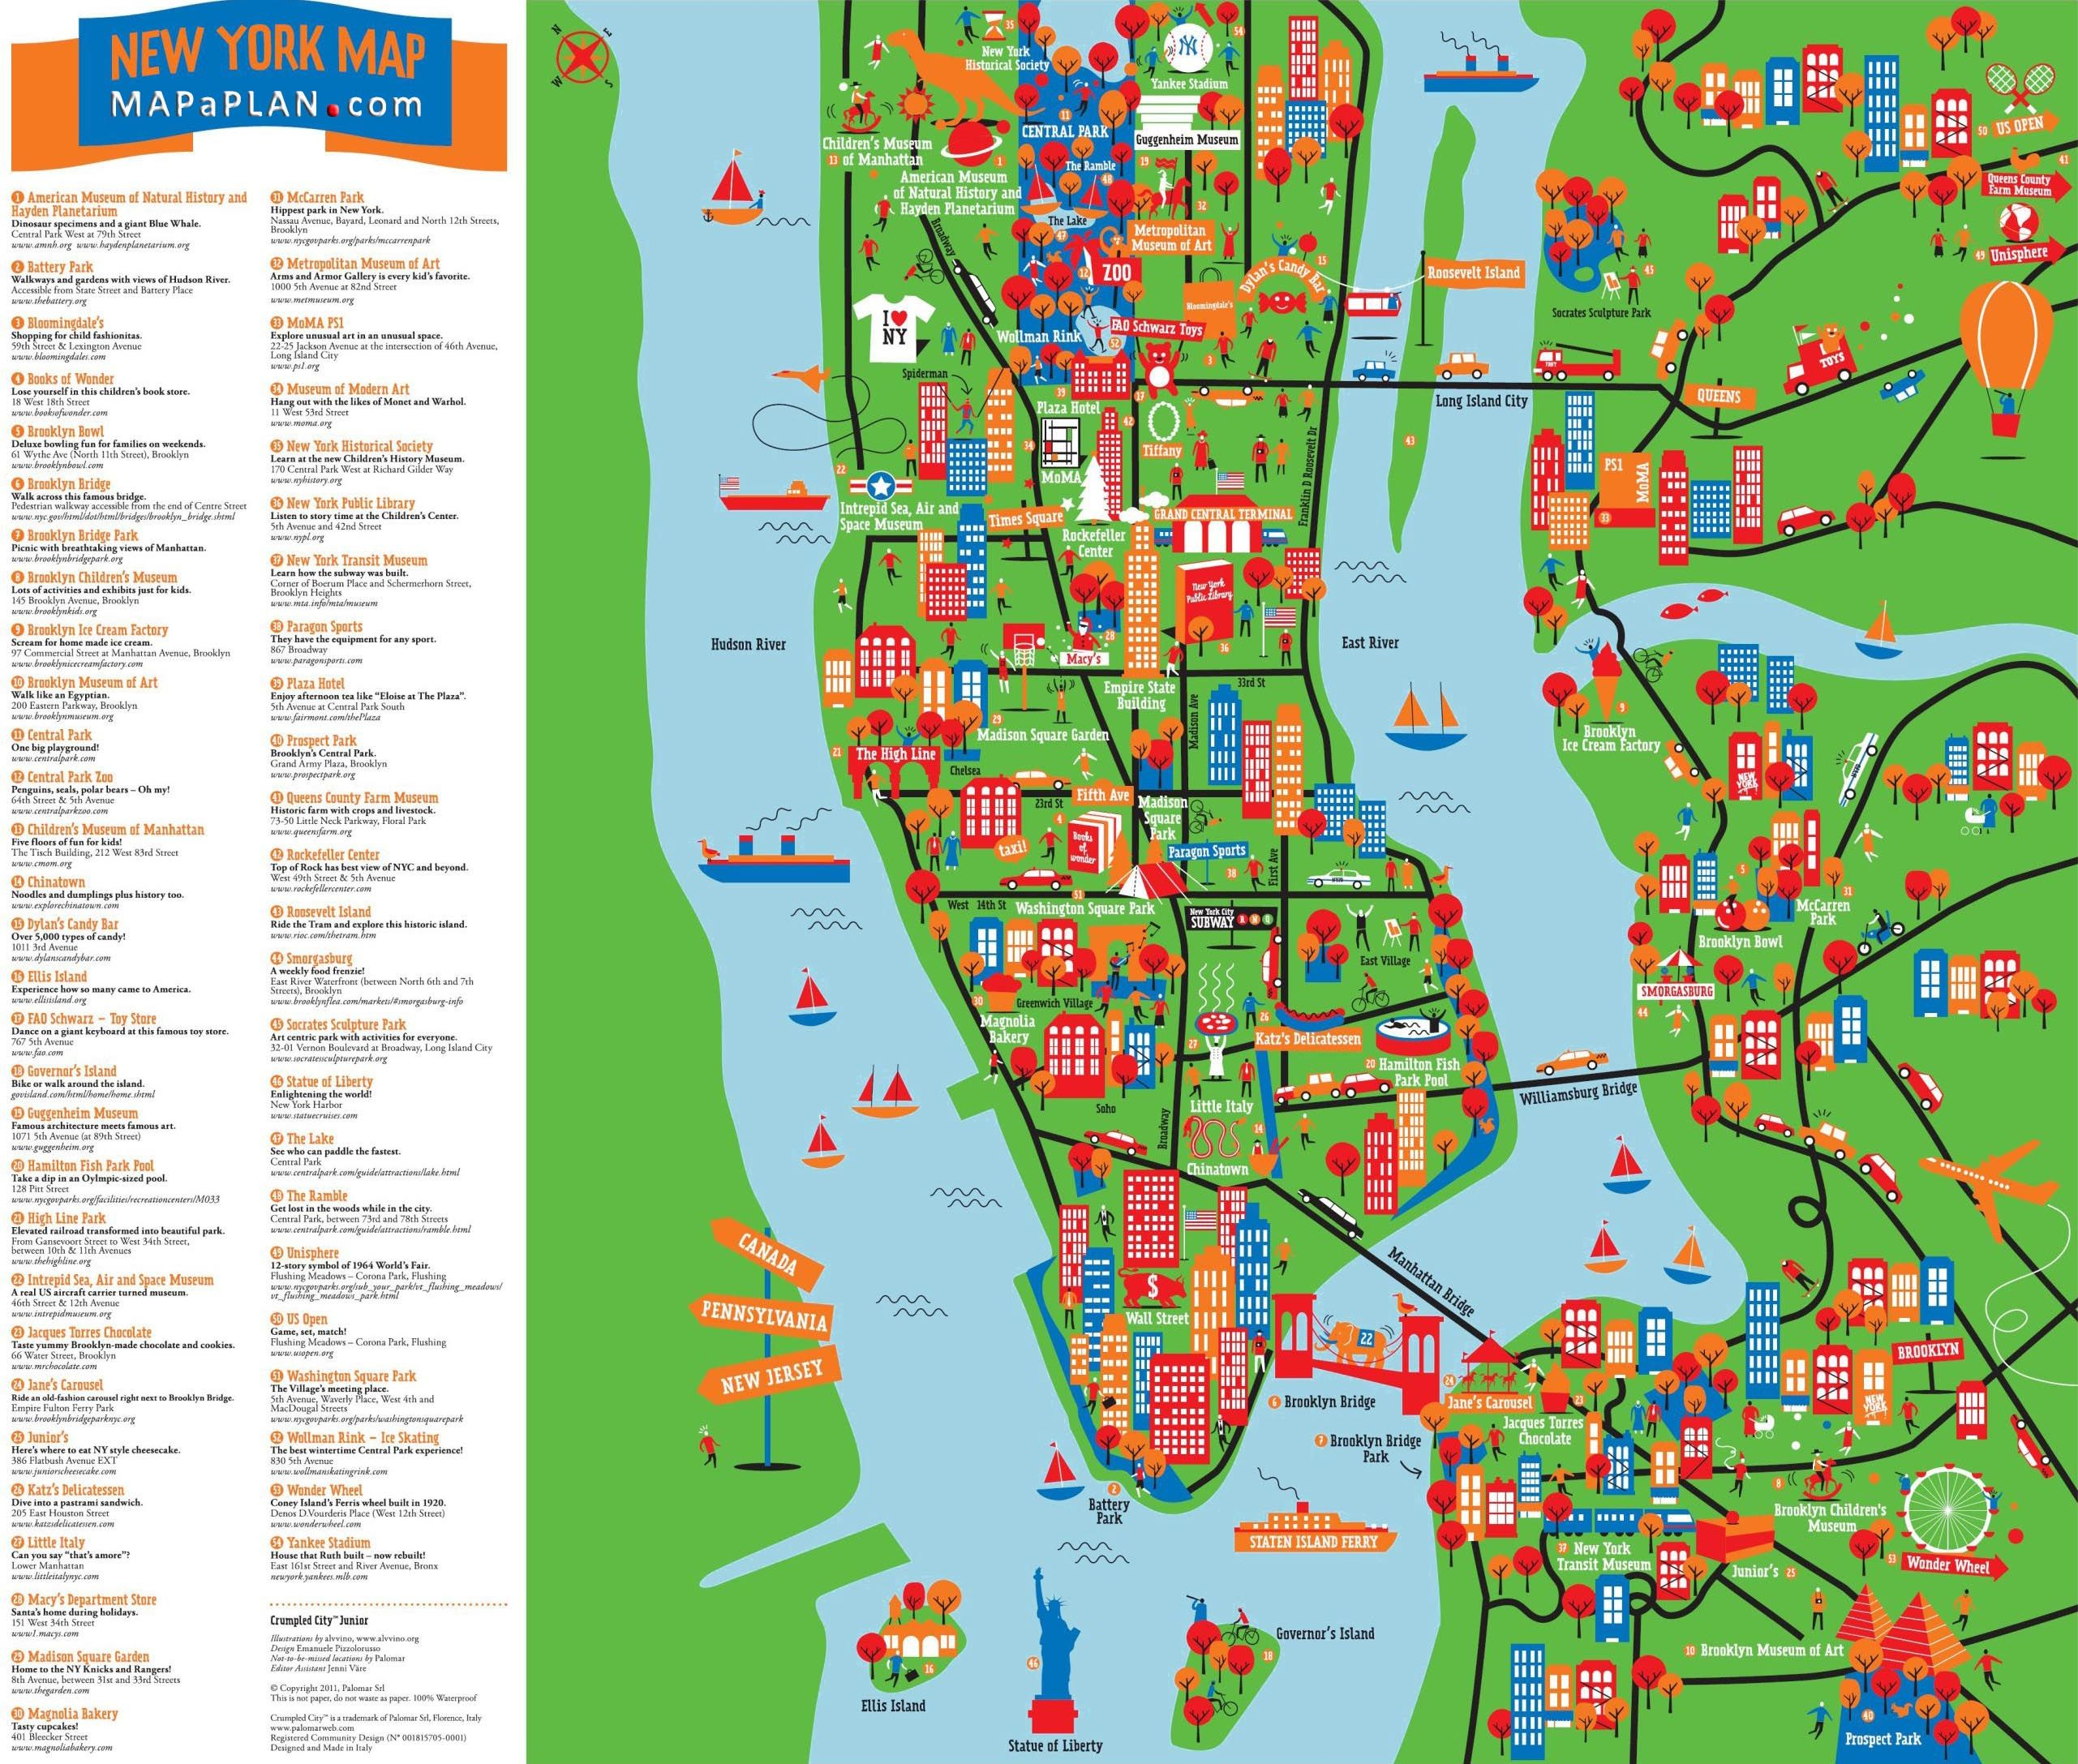 Greatthingstodowithkidschildreninteractivecolorfulnew - Nyc map